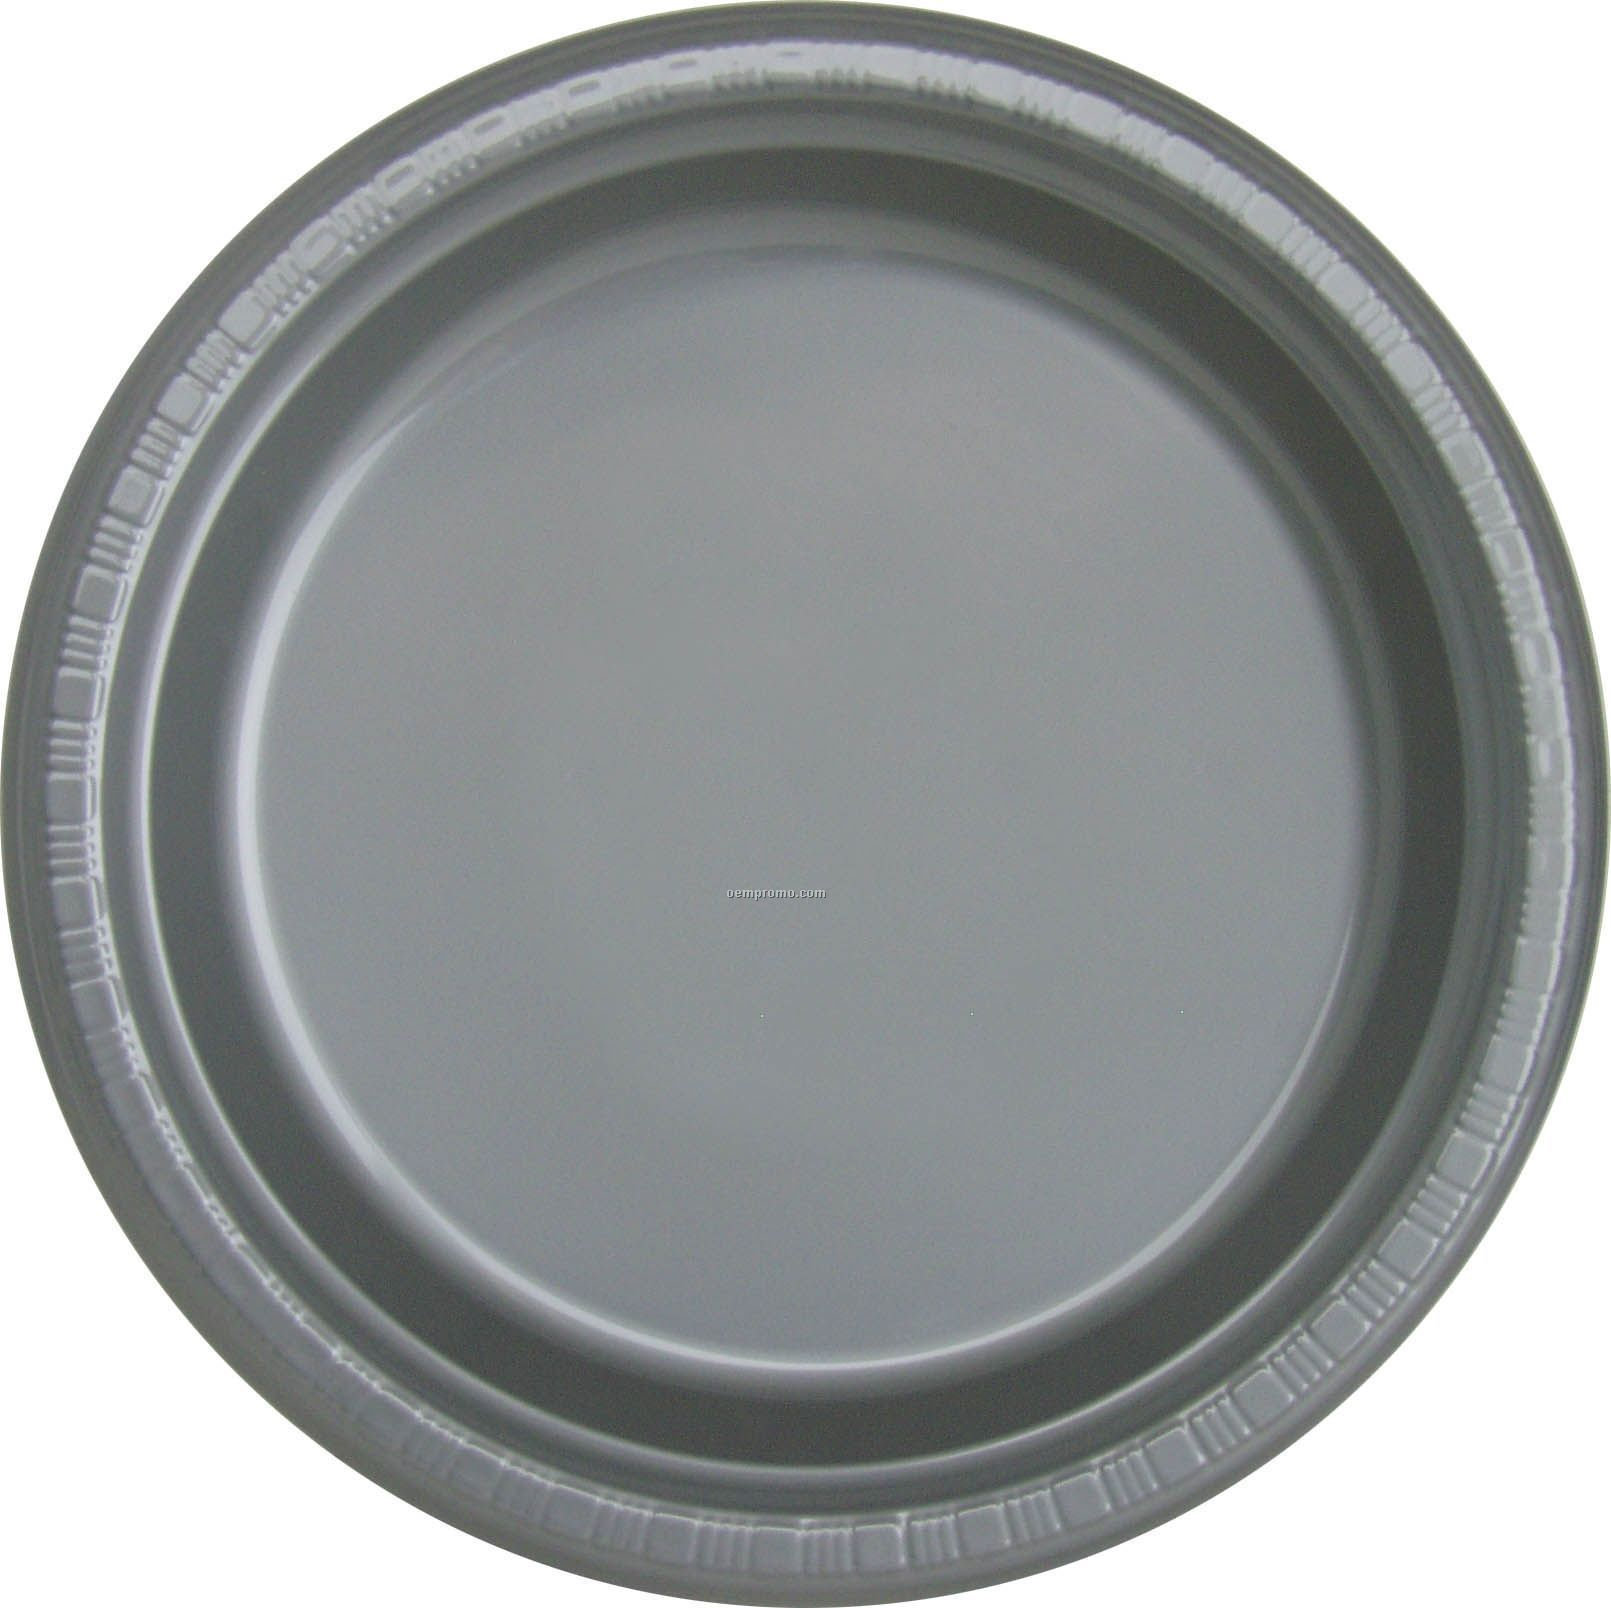 Colorware 9 Quot Silver Gray Shimmering Silver Plastic Plate China Wholesale Colorware 9 Quot Silver